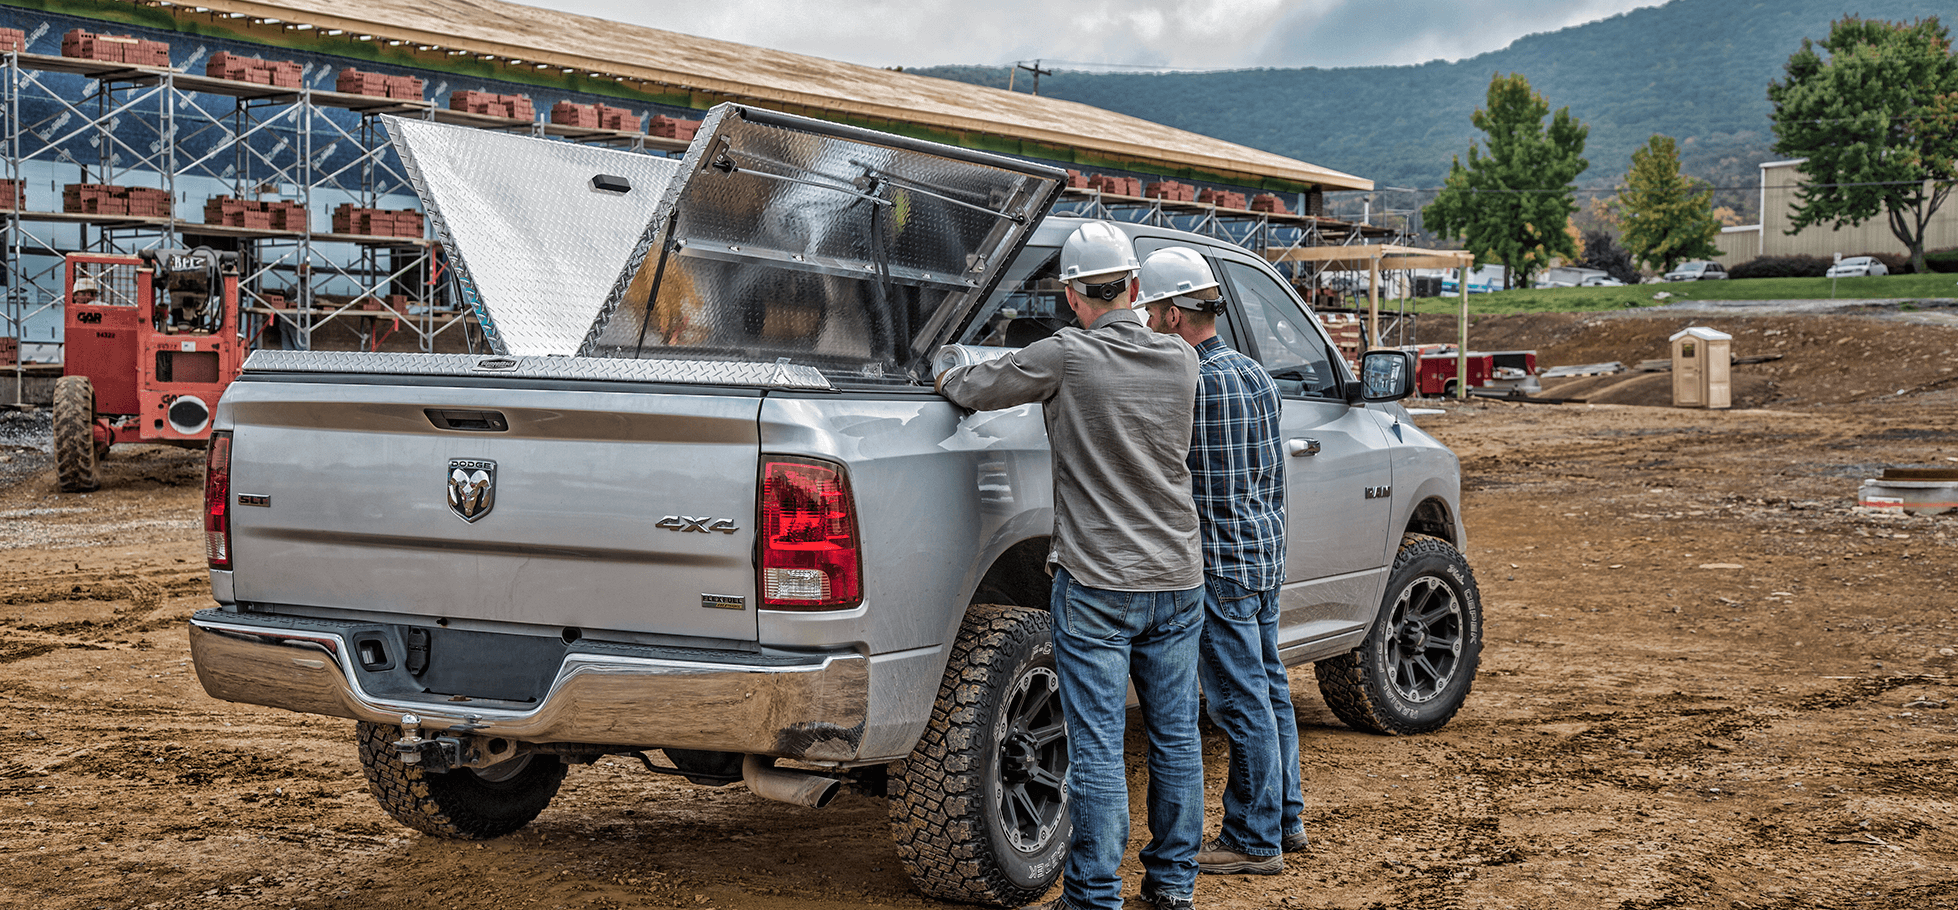 open 180 aluminum tonneau cover at construction site with two guys standing at truck